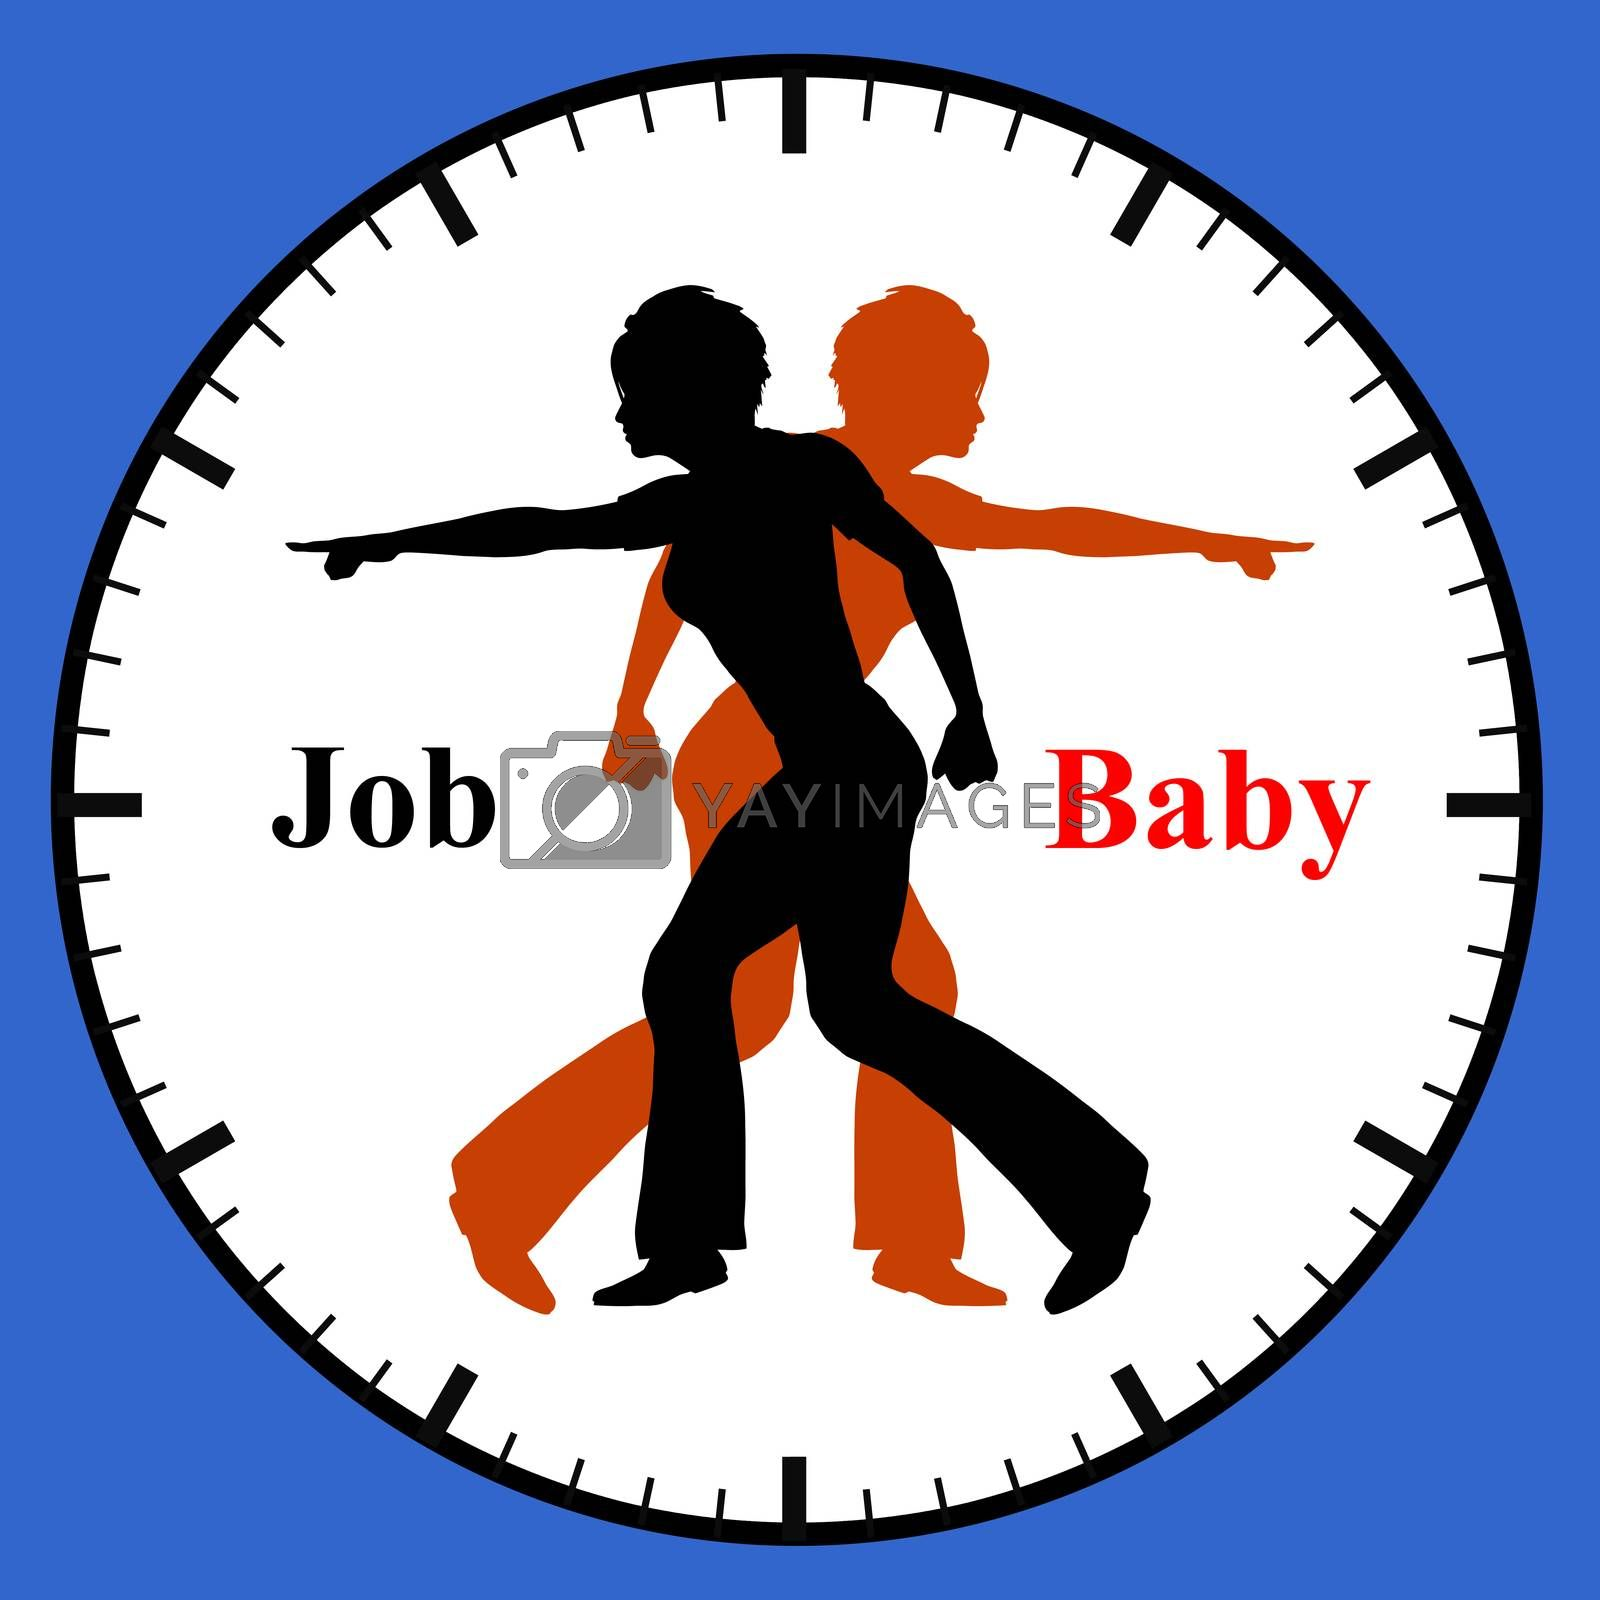 Conflict of compatibility of having a baby and work